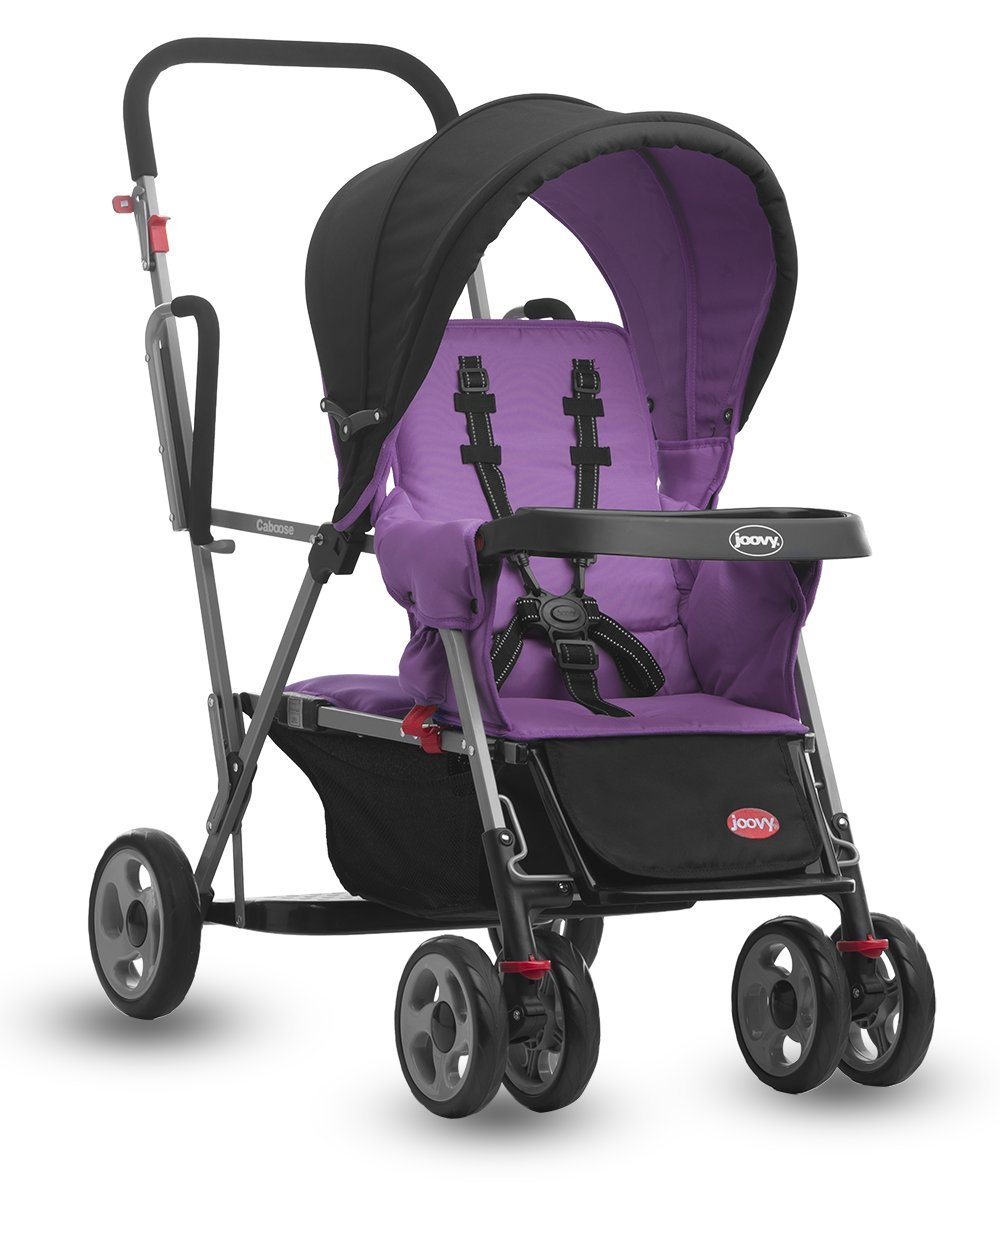 Joovy Caboose Stand On Tandem Stroller, Purpleness